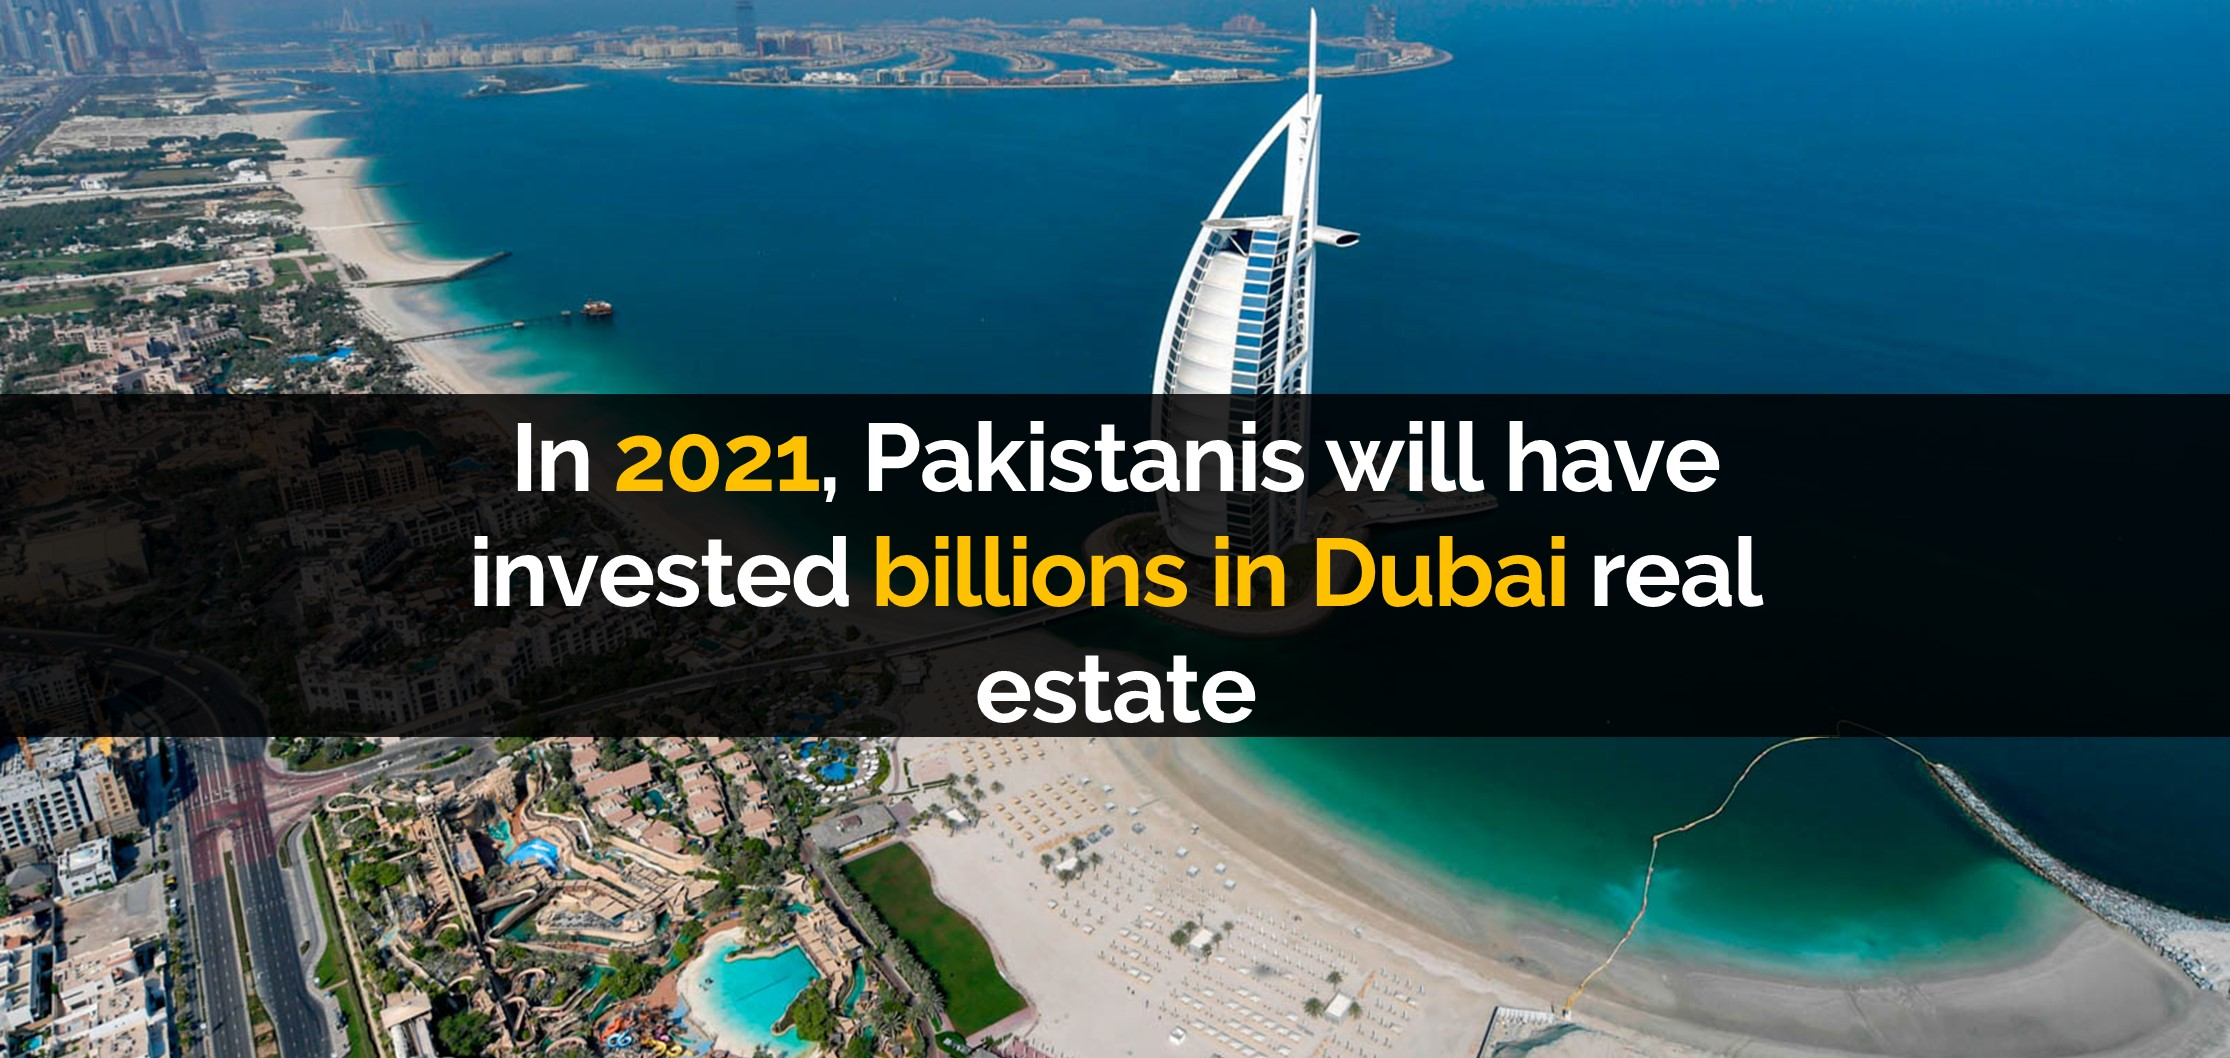 In 2021, Pakistanis will have invested billions in Dubai real estate